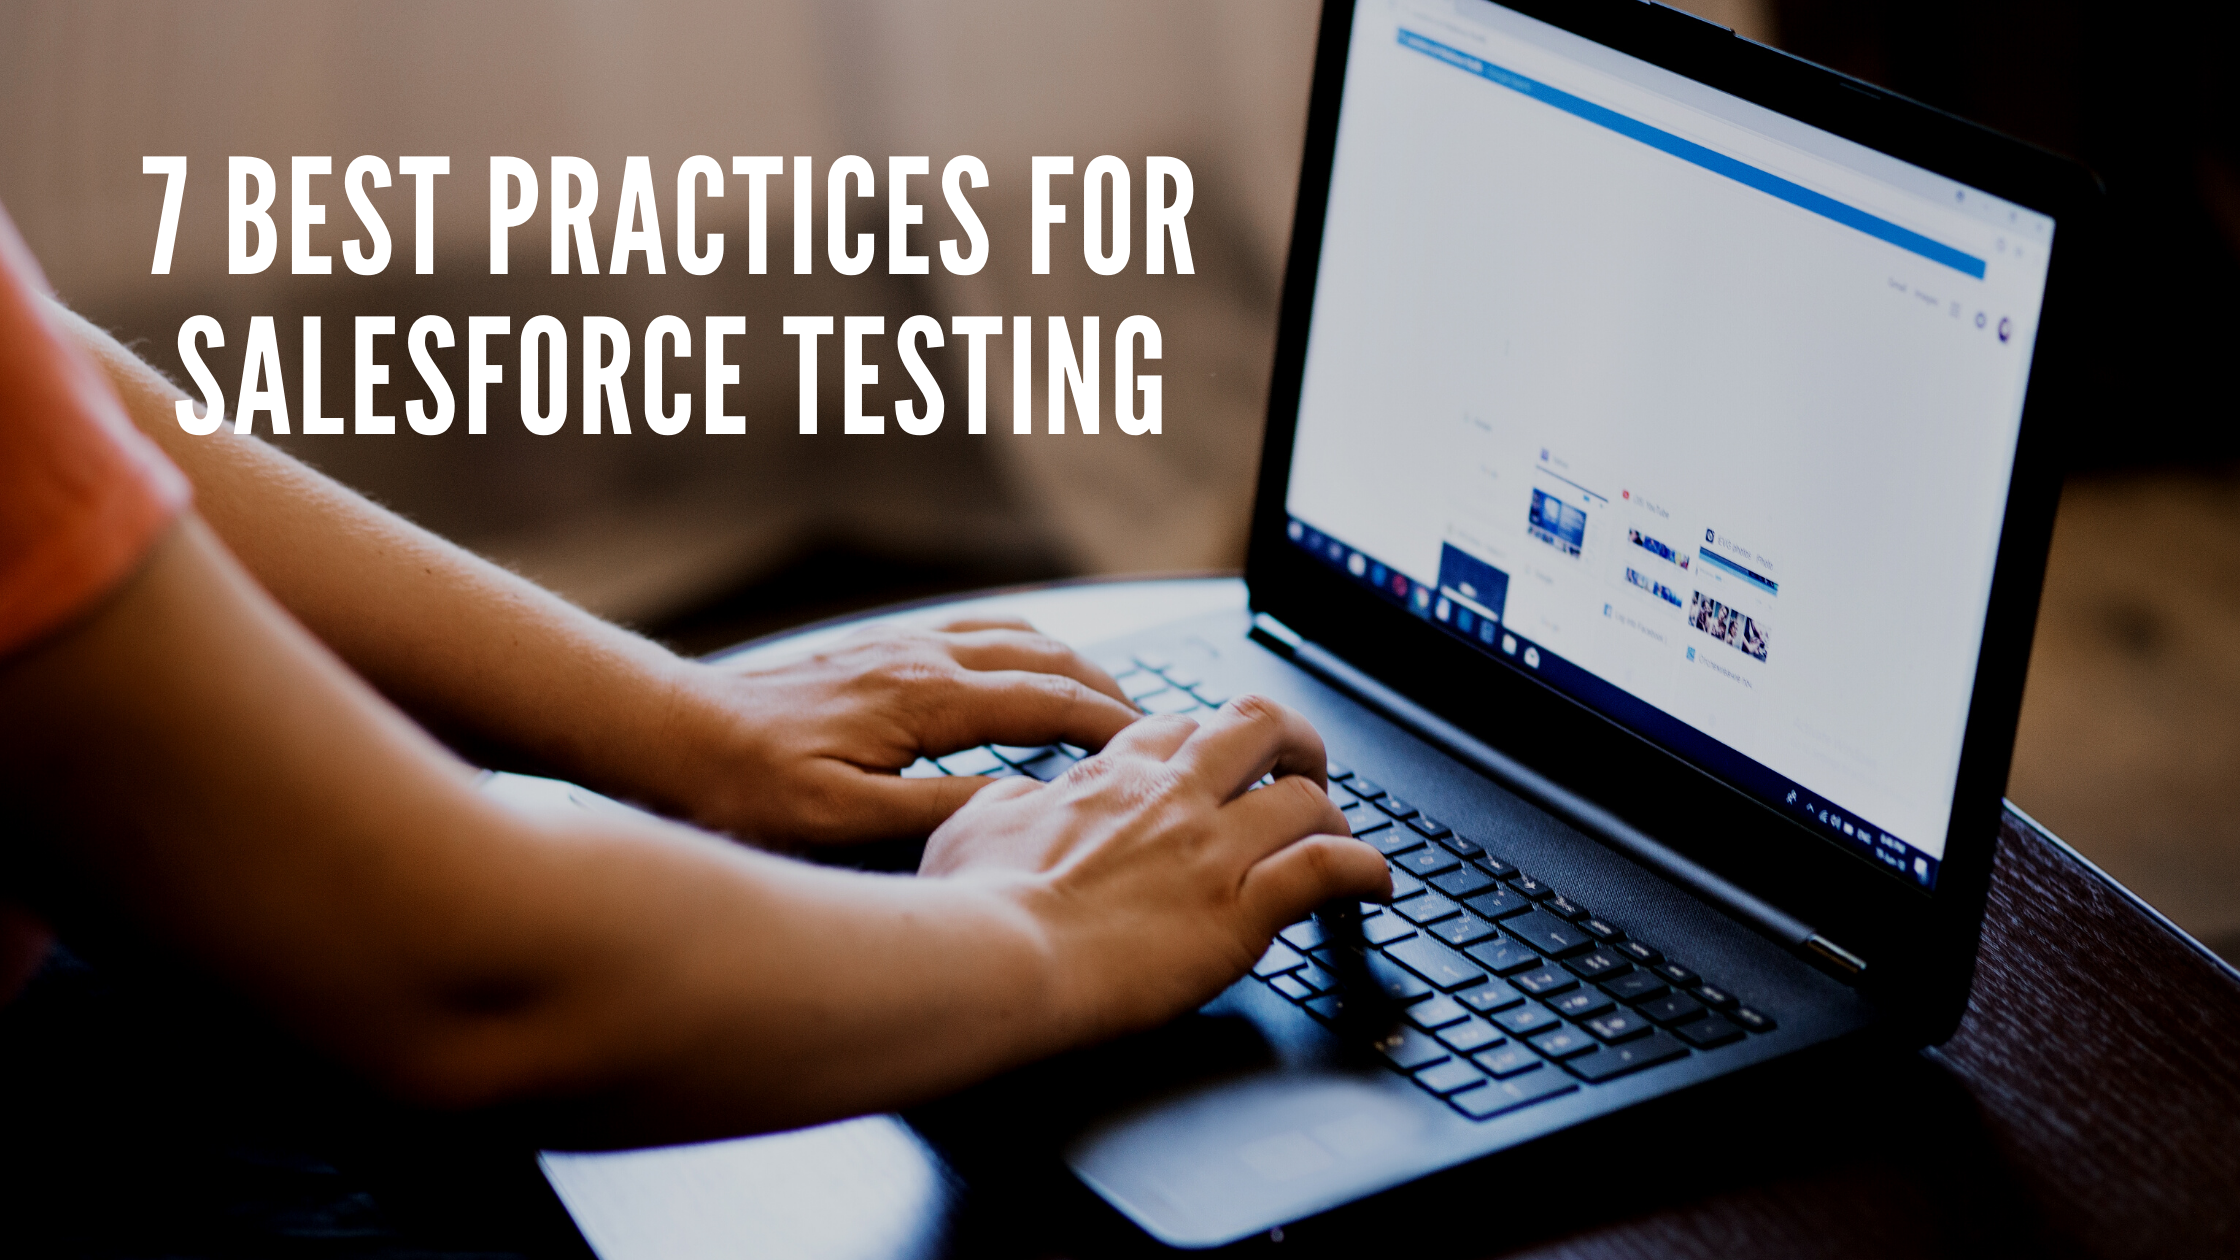 7 Best Practices for Salesforce Testing